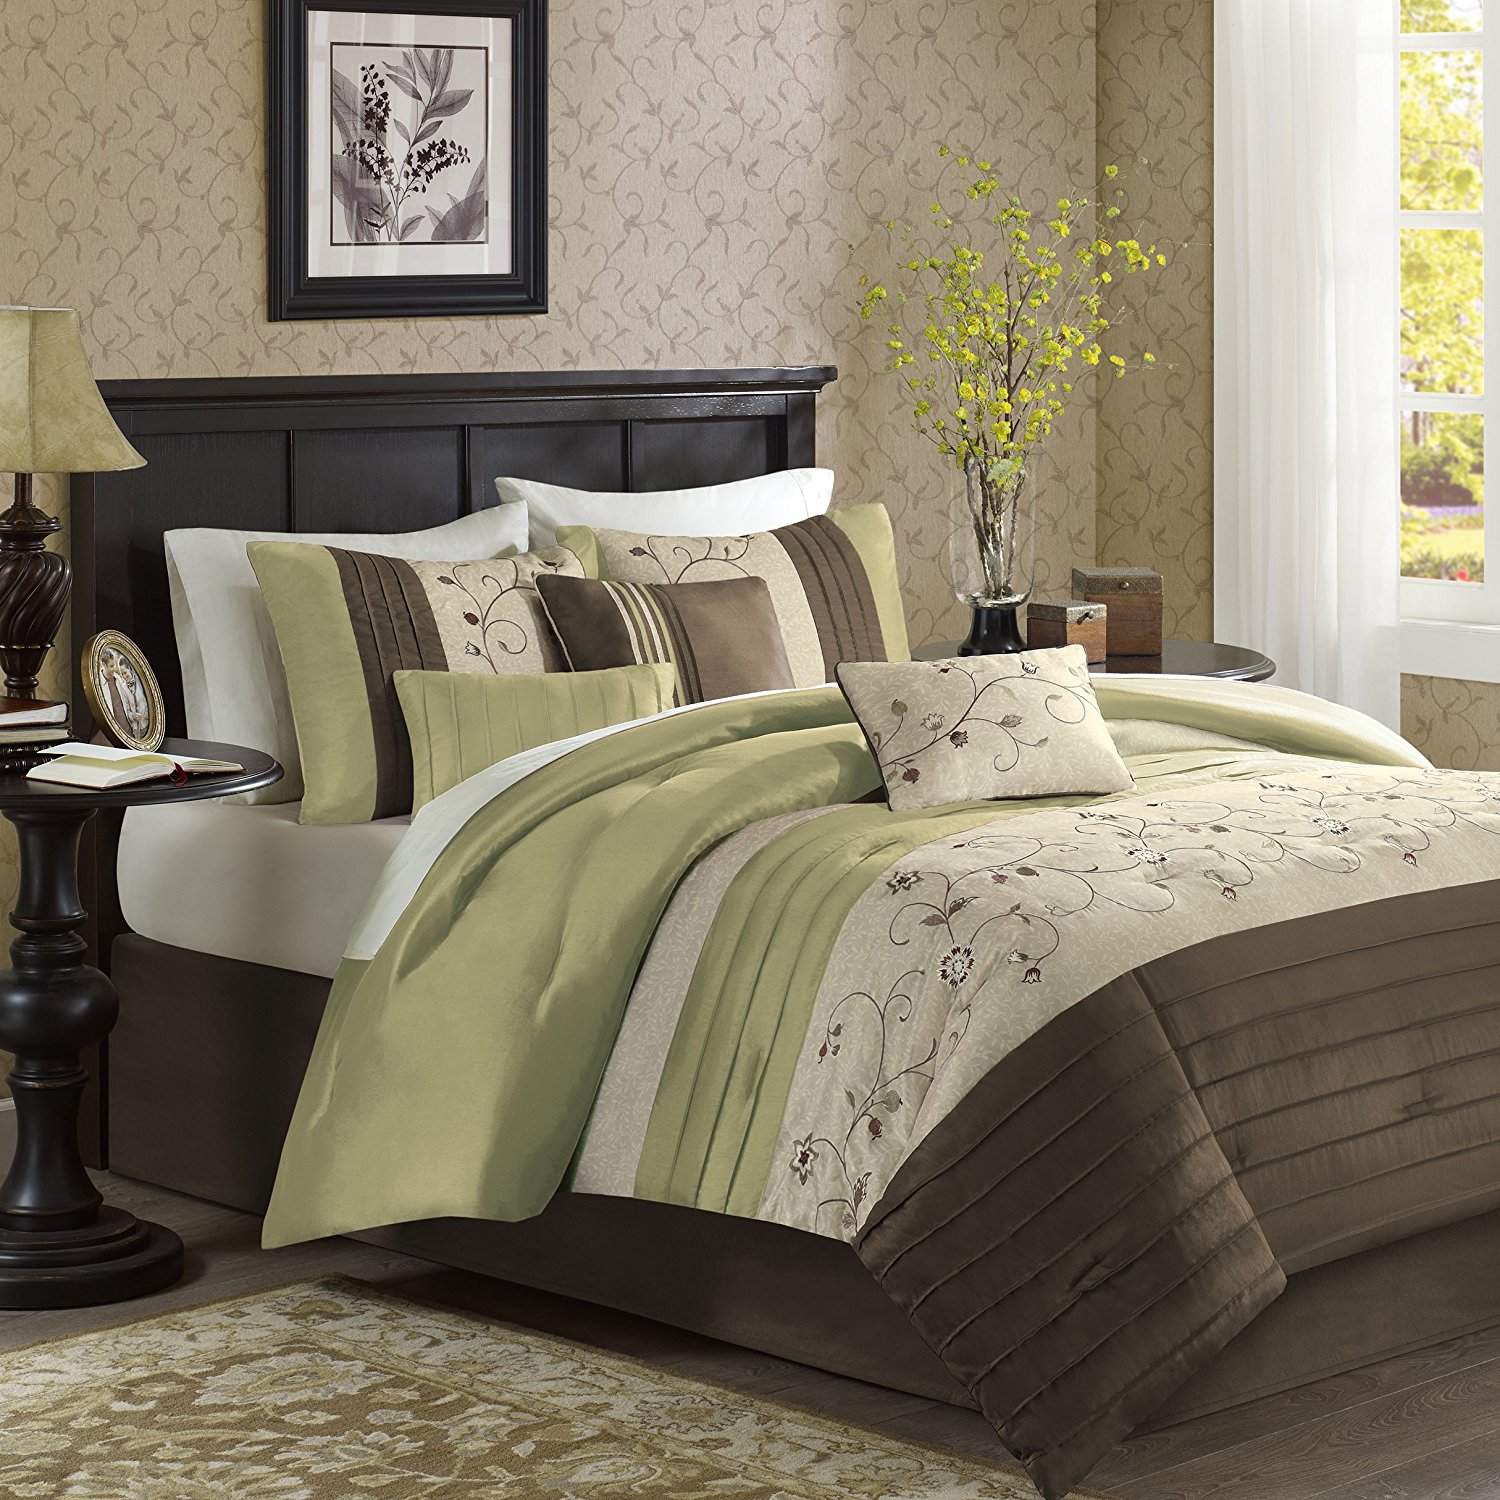 Image of: Forest Green Comforter